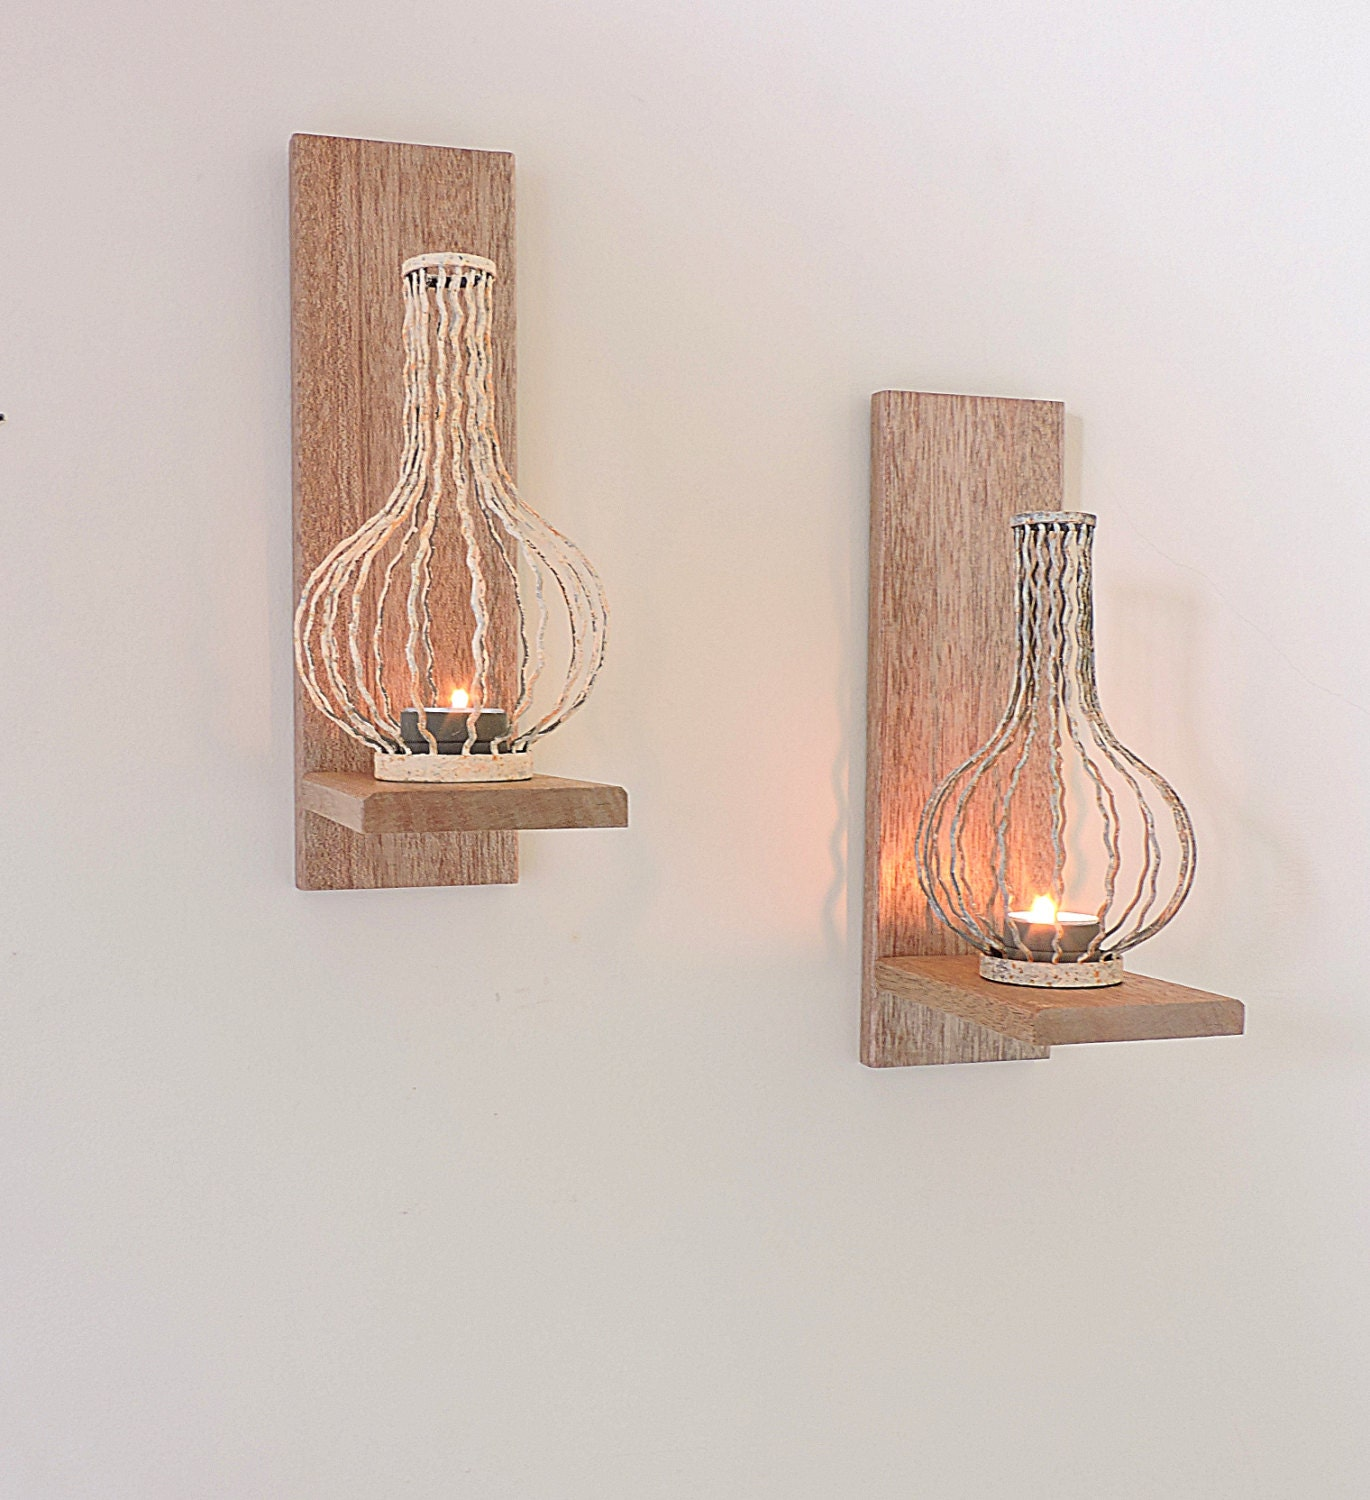 Oak Wall Sconces For Candles : 2 Rustic Wooden Candle Sconcesmahogany or oak candle holder